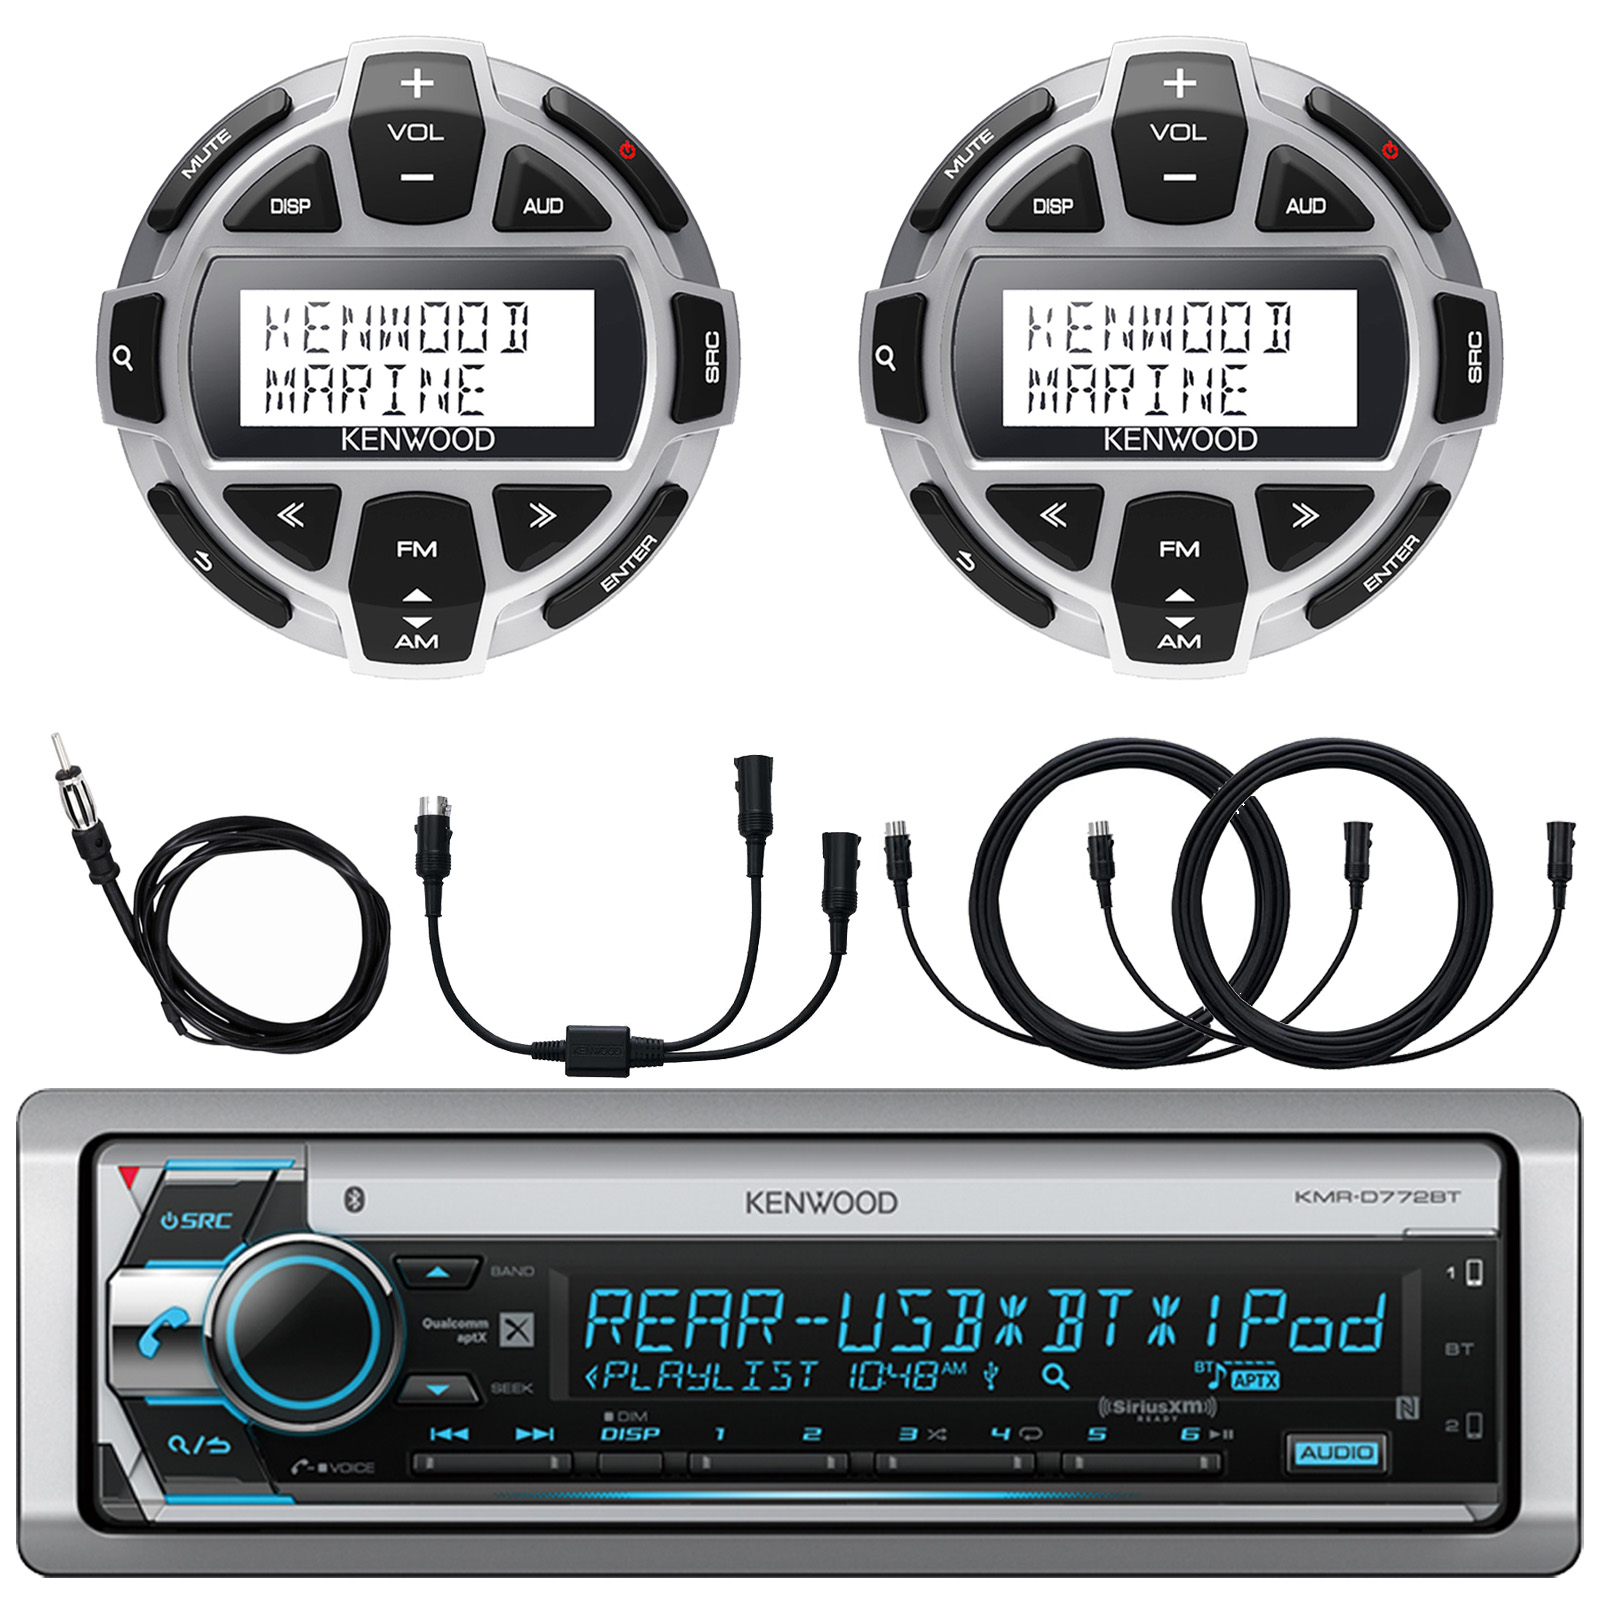 """Kenwood Single DIN Marine Boat Yacht USB CD Player Bluetooth Stereo Receiver, 2x Kenwood Digital LCD Display Wired Remote, 40"""" AM/FM Antenna, Y-Cable Splitter Adapter, 2x 7-Meter 22 Ft Extension"""